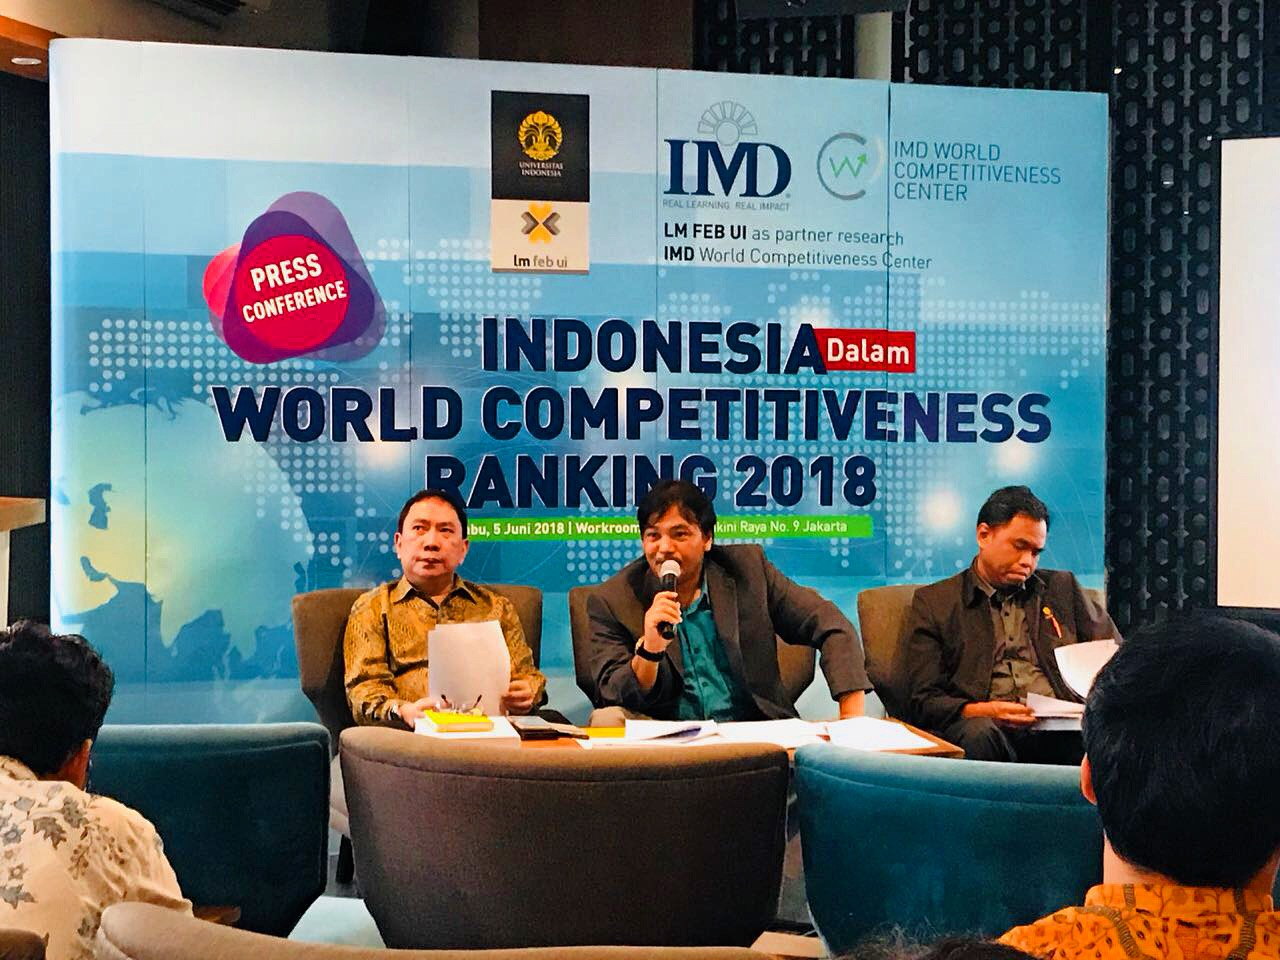 Peluncuran IMD World Competitiveness Yearbook 2018 - Indonesia Report